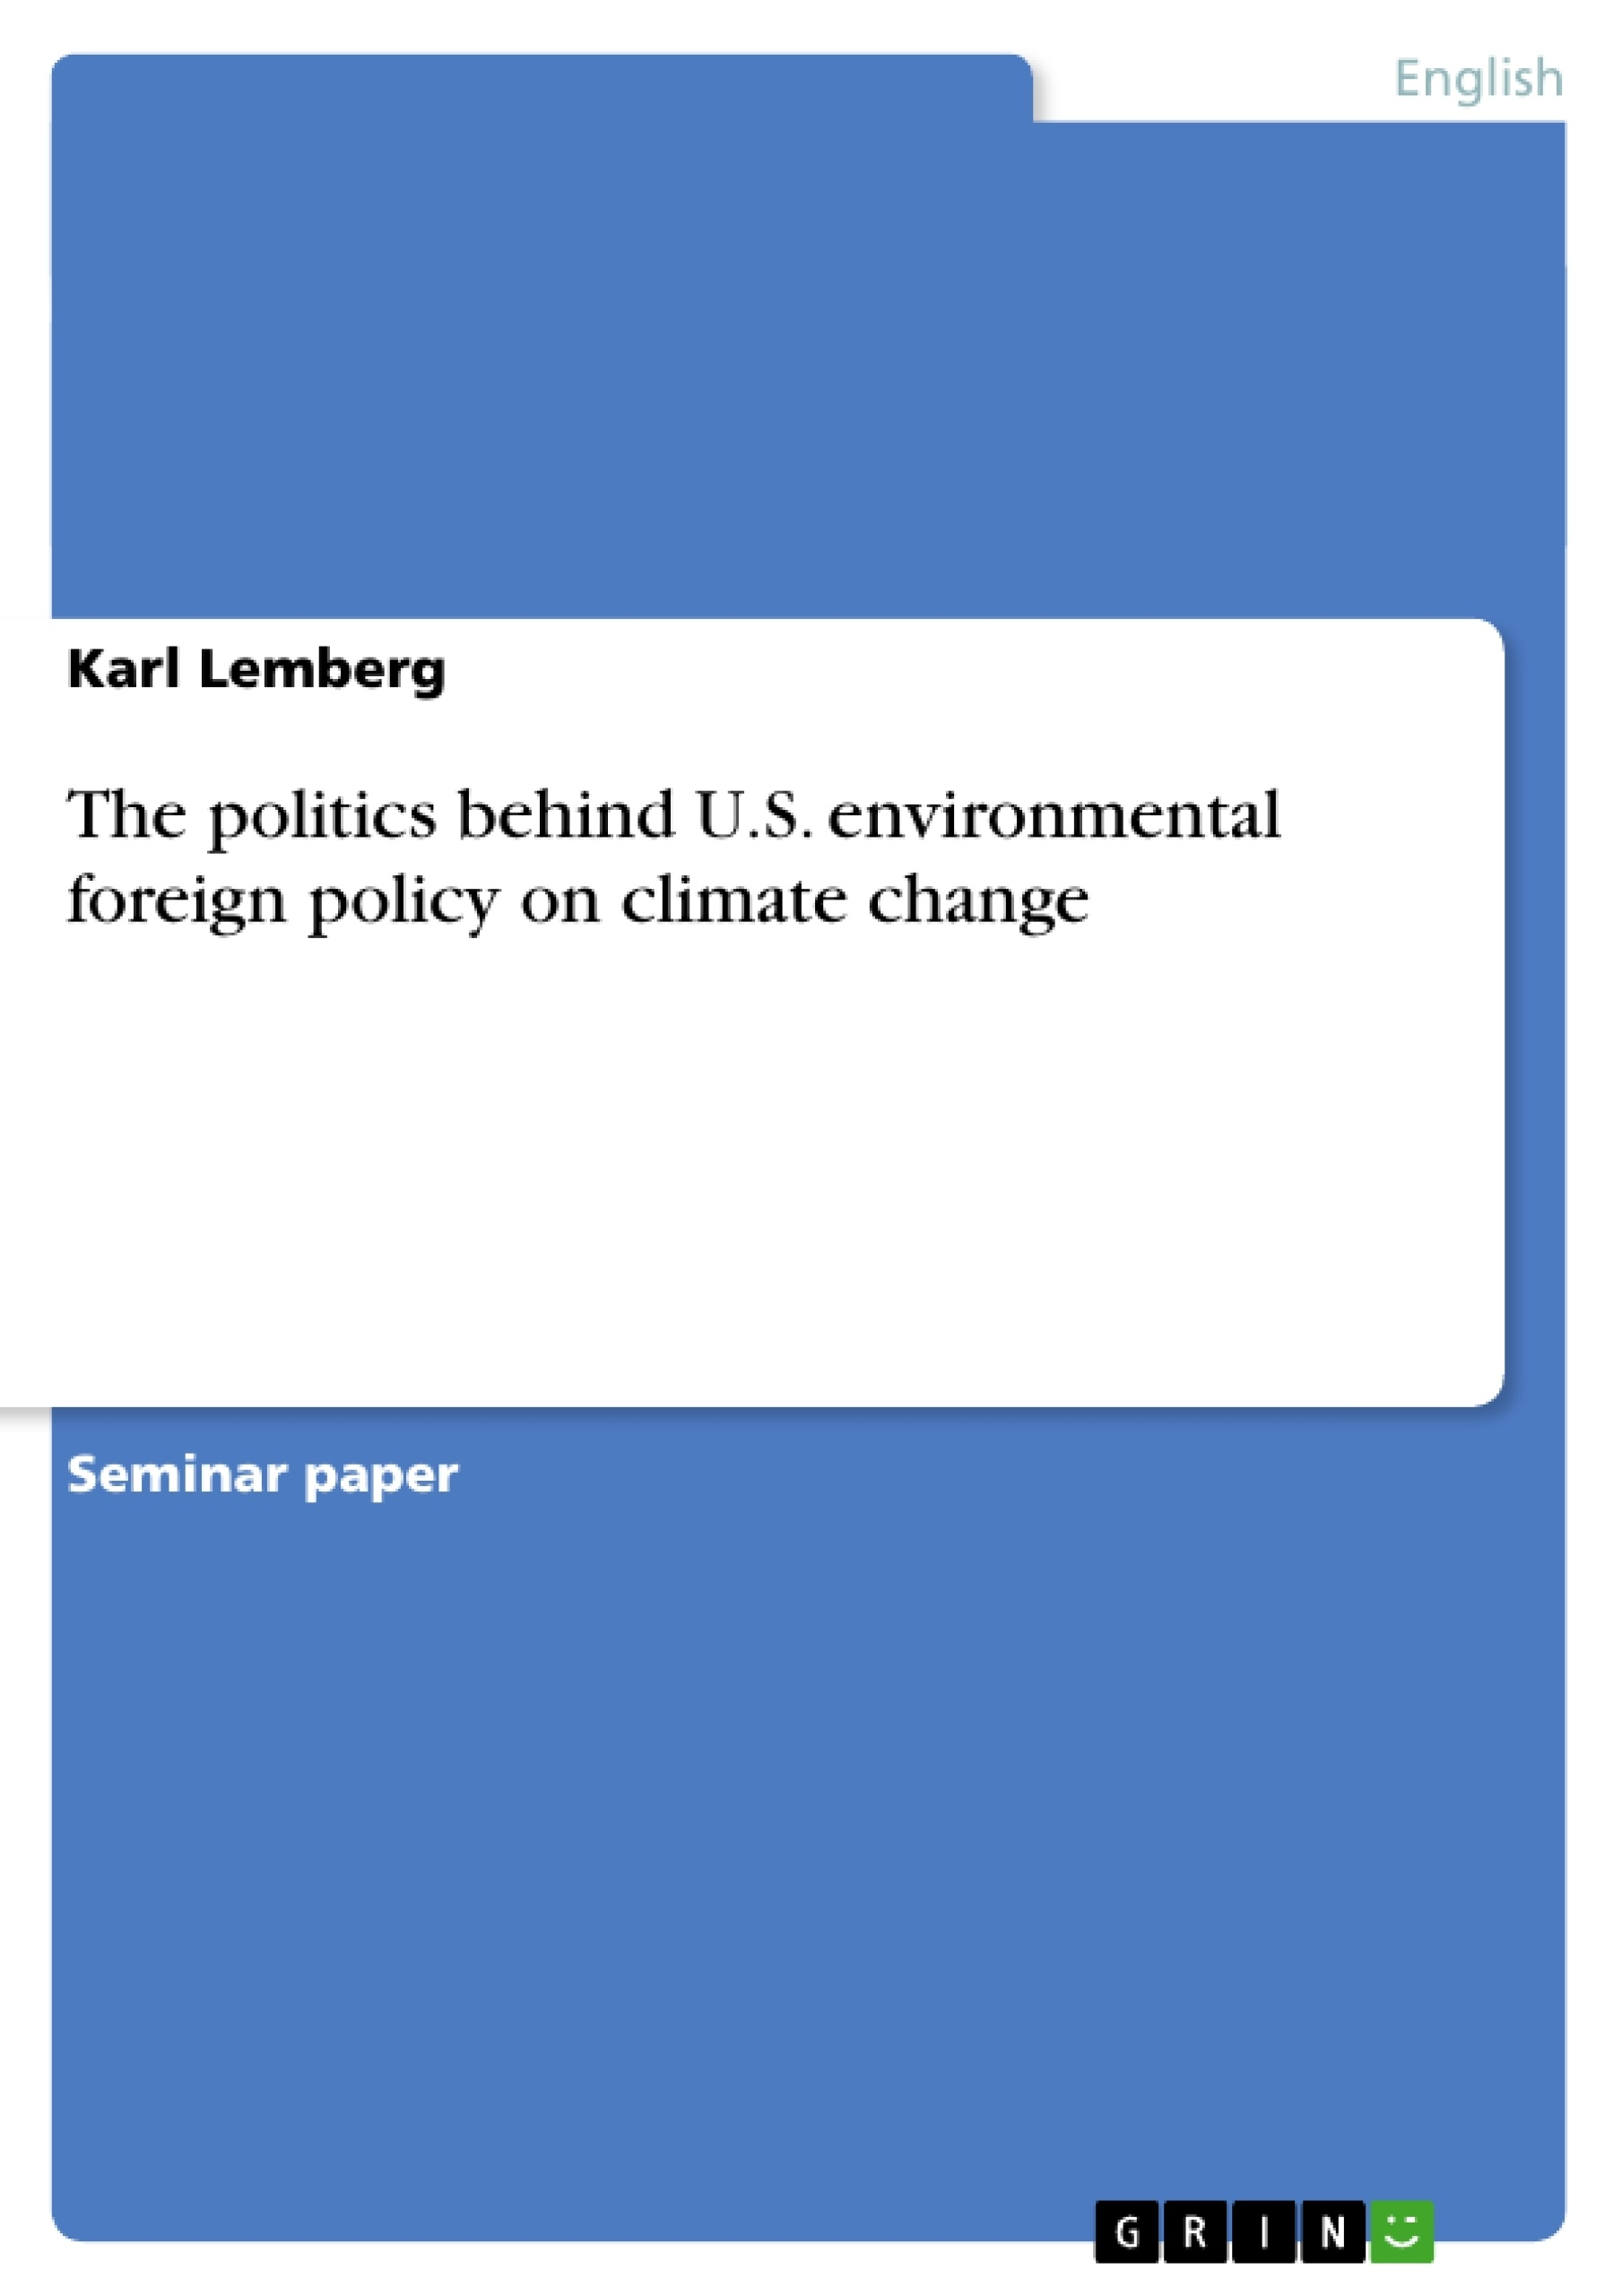 Title: The politics behind U.S. environmental foreign policy on climate change